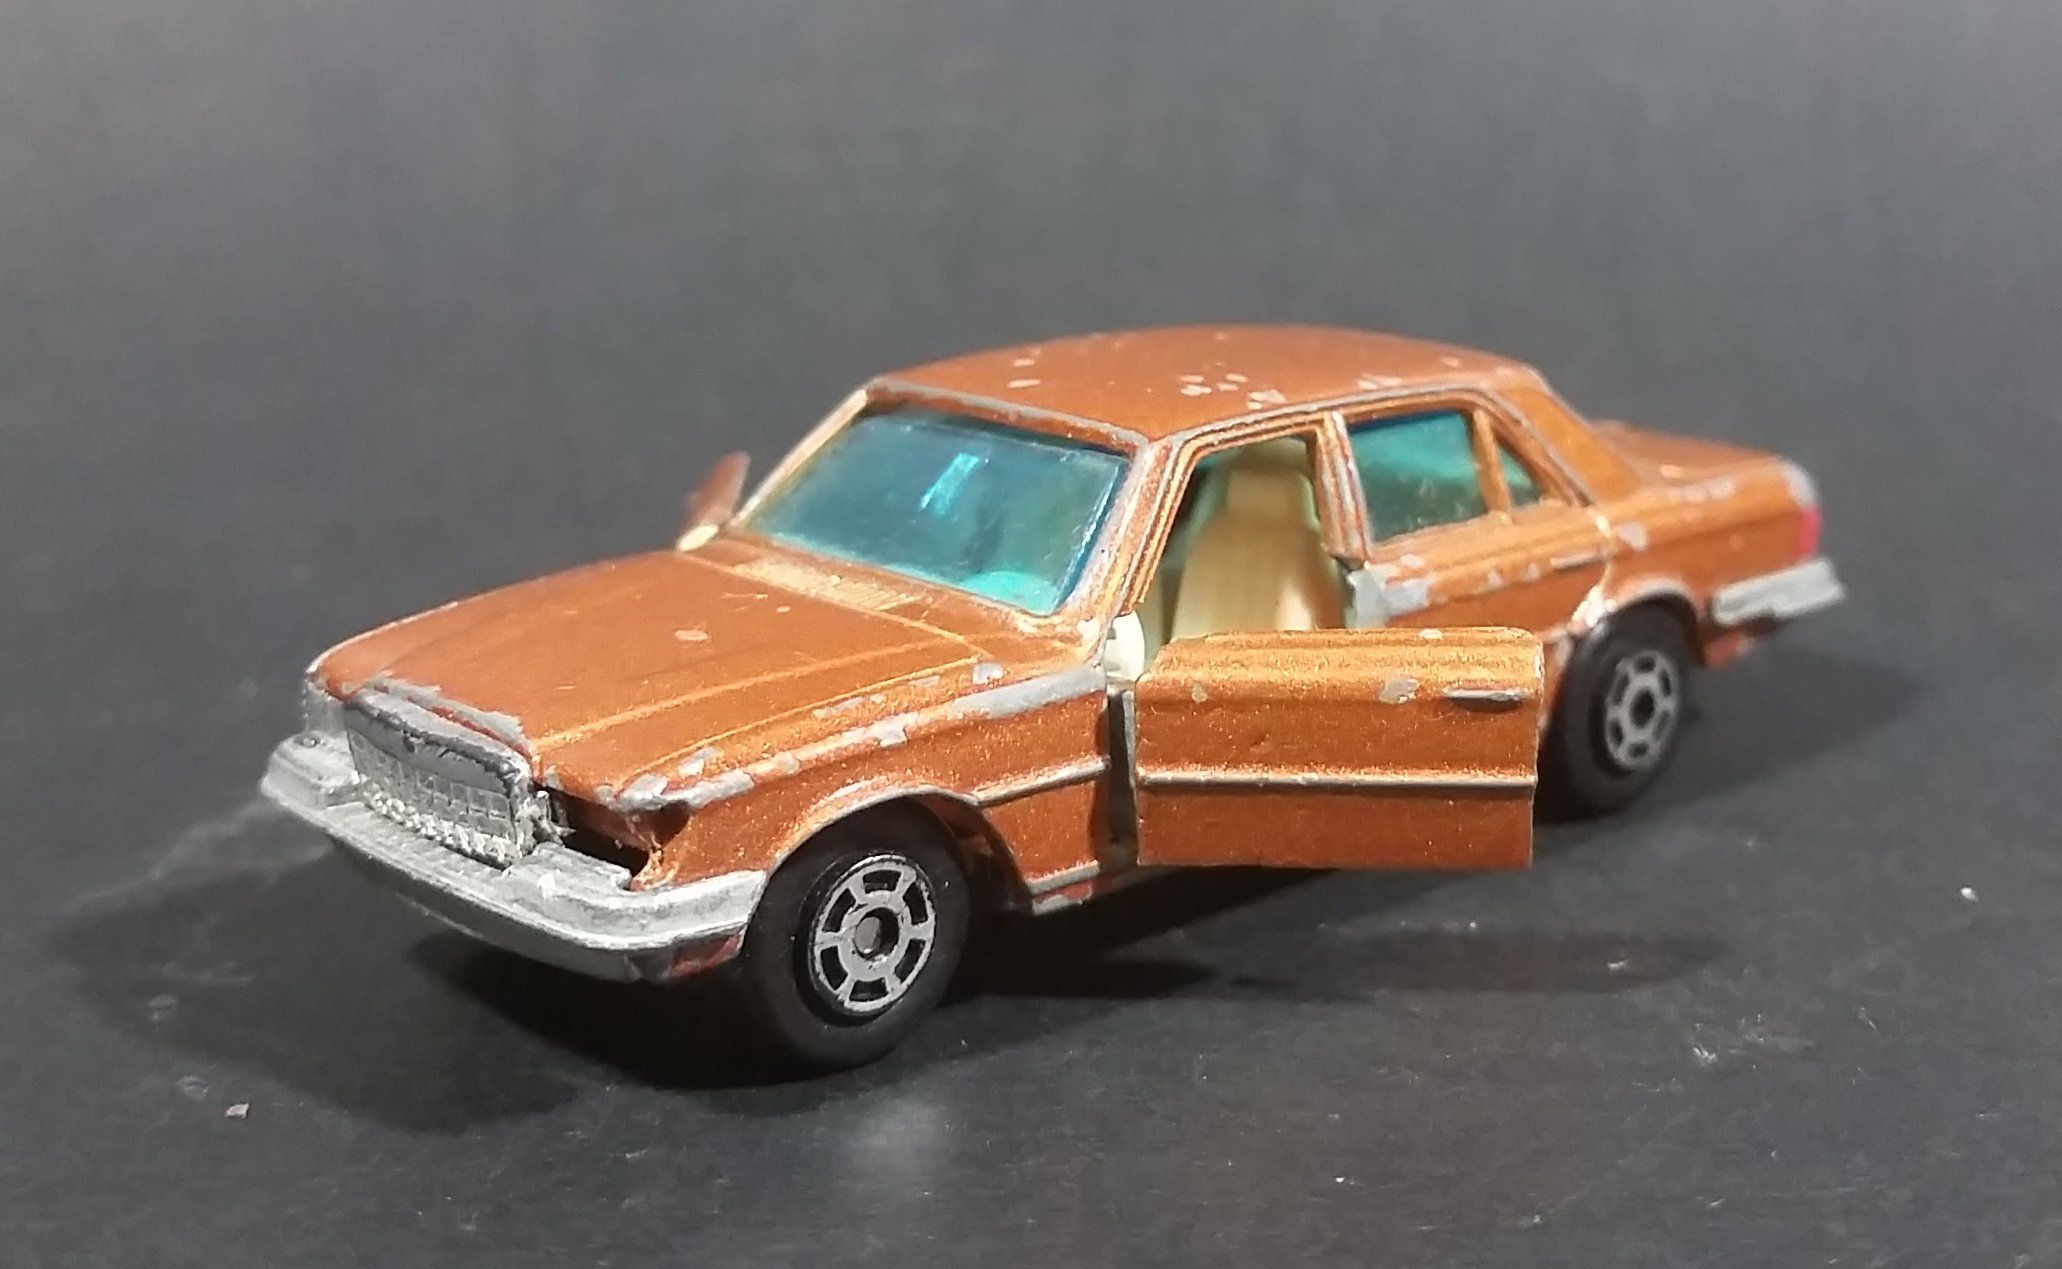 1980s Yatming Brown Bronze Mercedes 450 SL w/ Opening Doors Diecast Toy Car No. 1061 https://treasurevalleyantiques.com/products/1980s-yatming-brown-bronze-mercedes-450-sl-w-opening-doors-diecast-toy-car-no-1061 #Vintage #1980s #80s #Eighties #Yatming #HongKong #Brown #Bronze #Mercedes #450SL #OpeningDoors #Diecast #Toys #Cars #Vehicles #Autos #Collectibles #Automobiles #Luxury